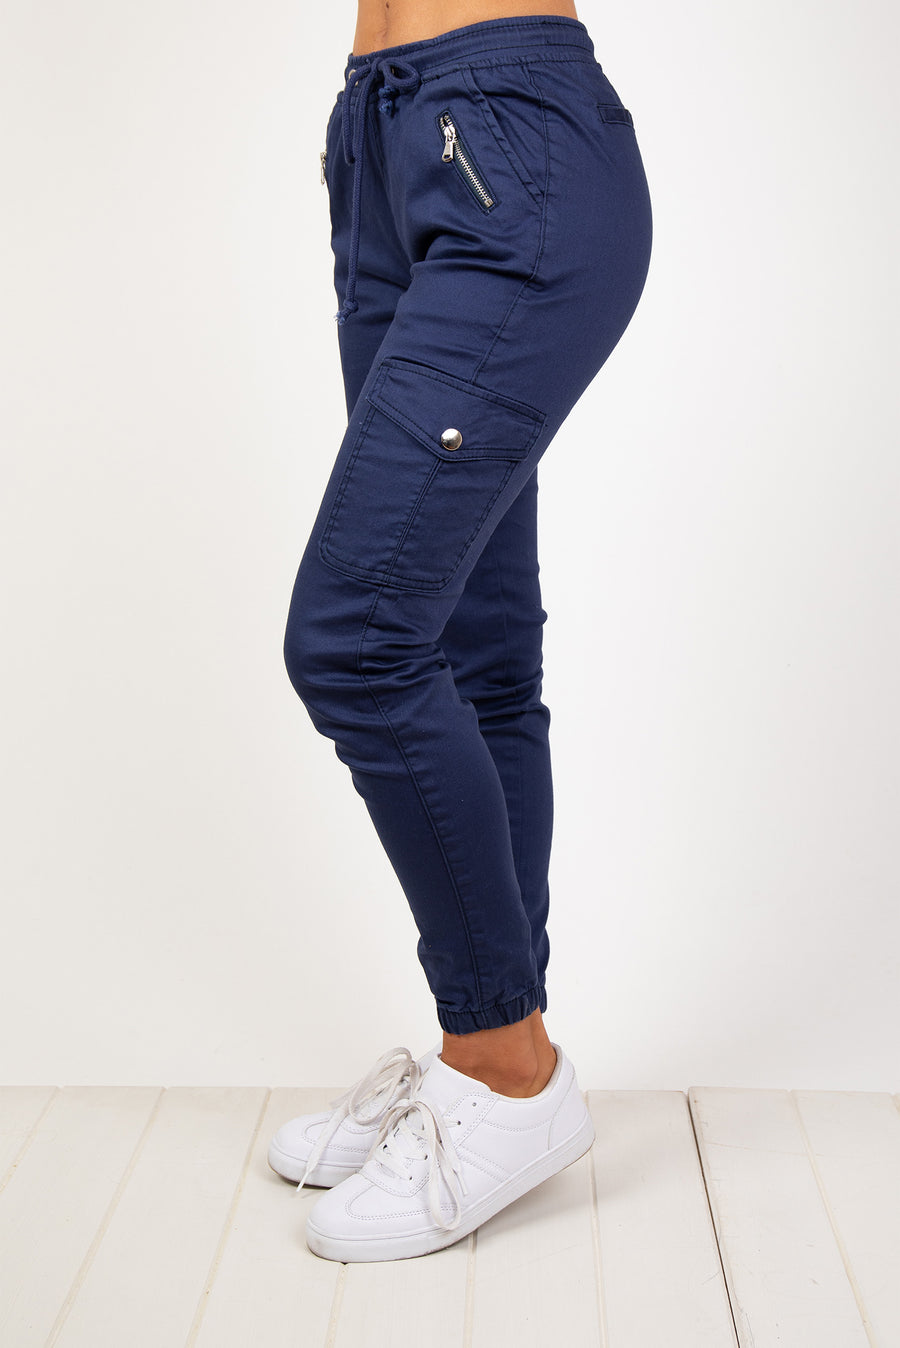 BILLY JOGGER - NAVY